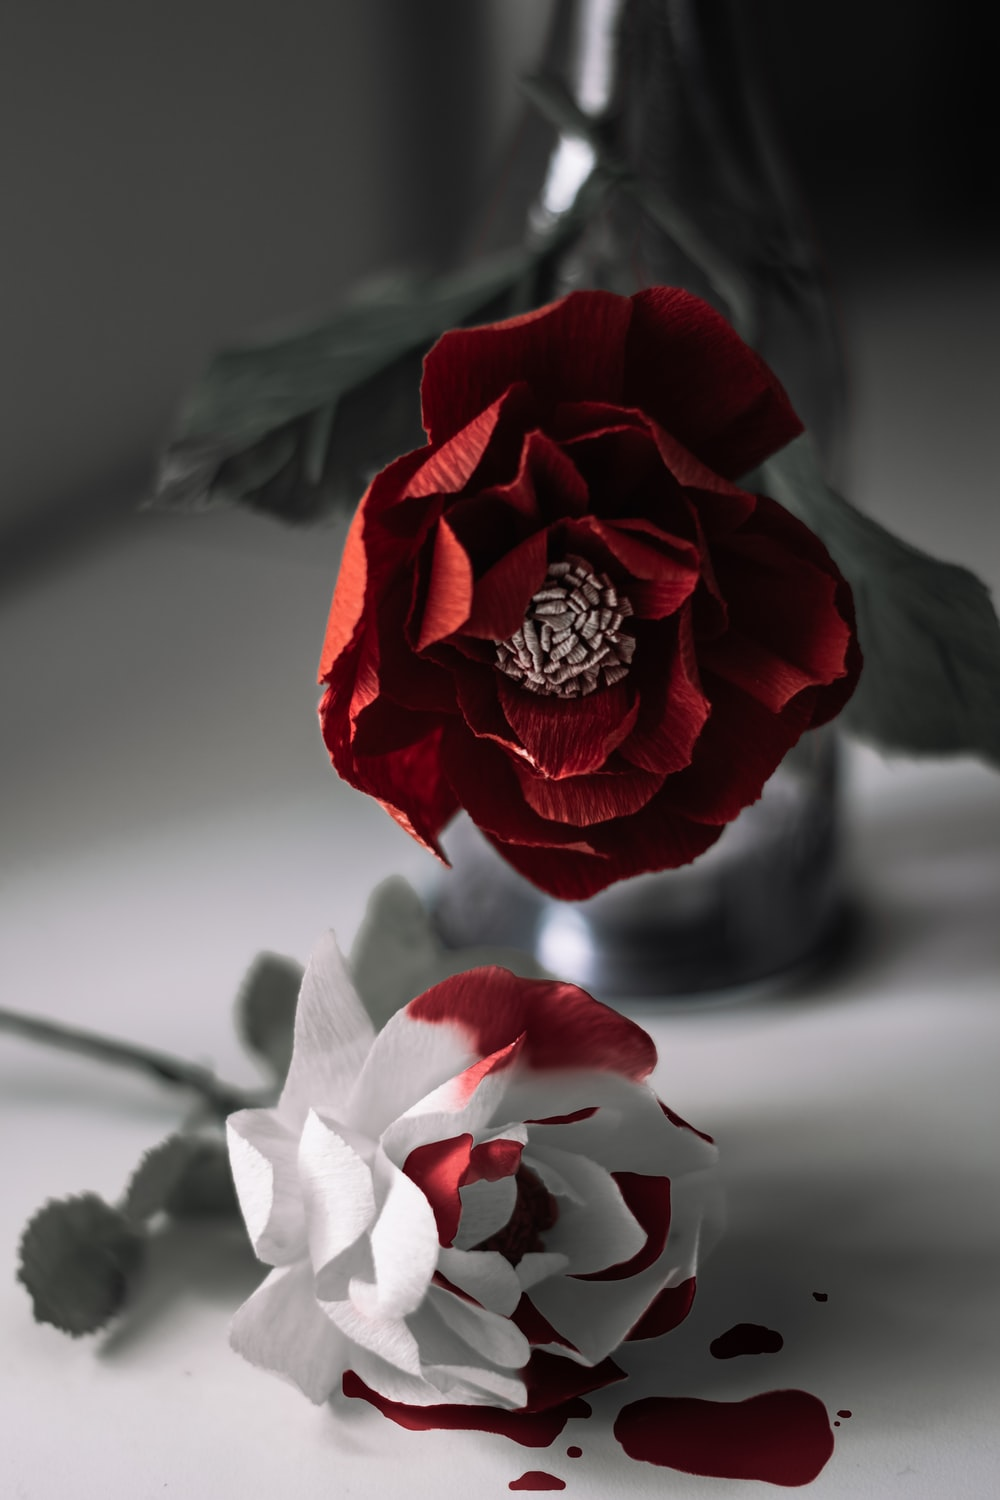 red rose in gray scale